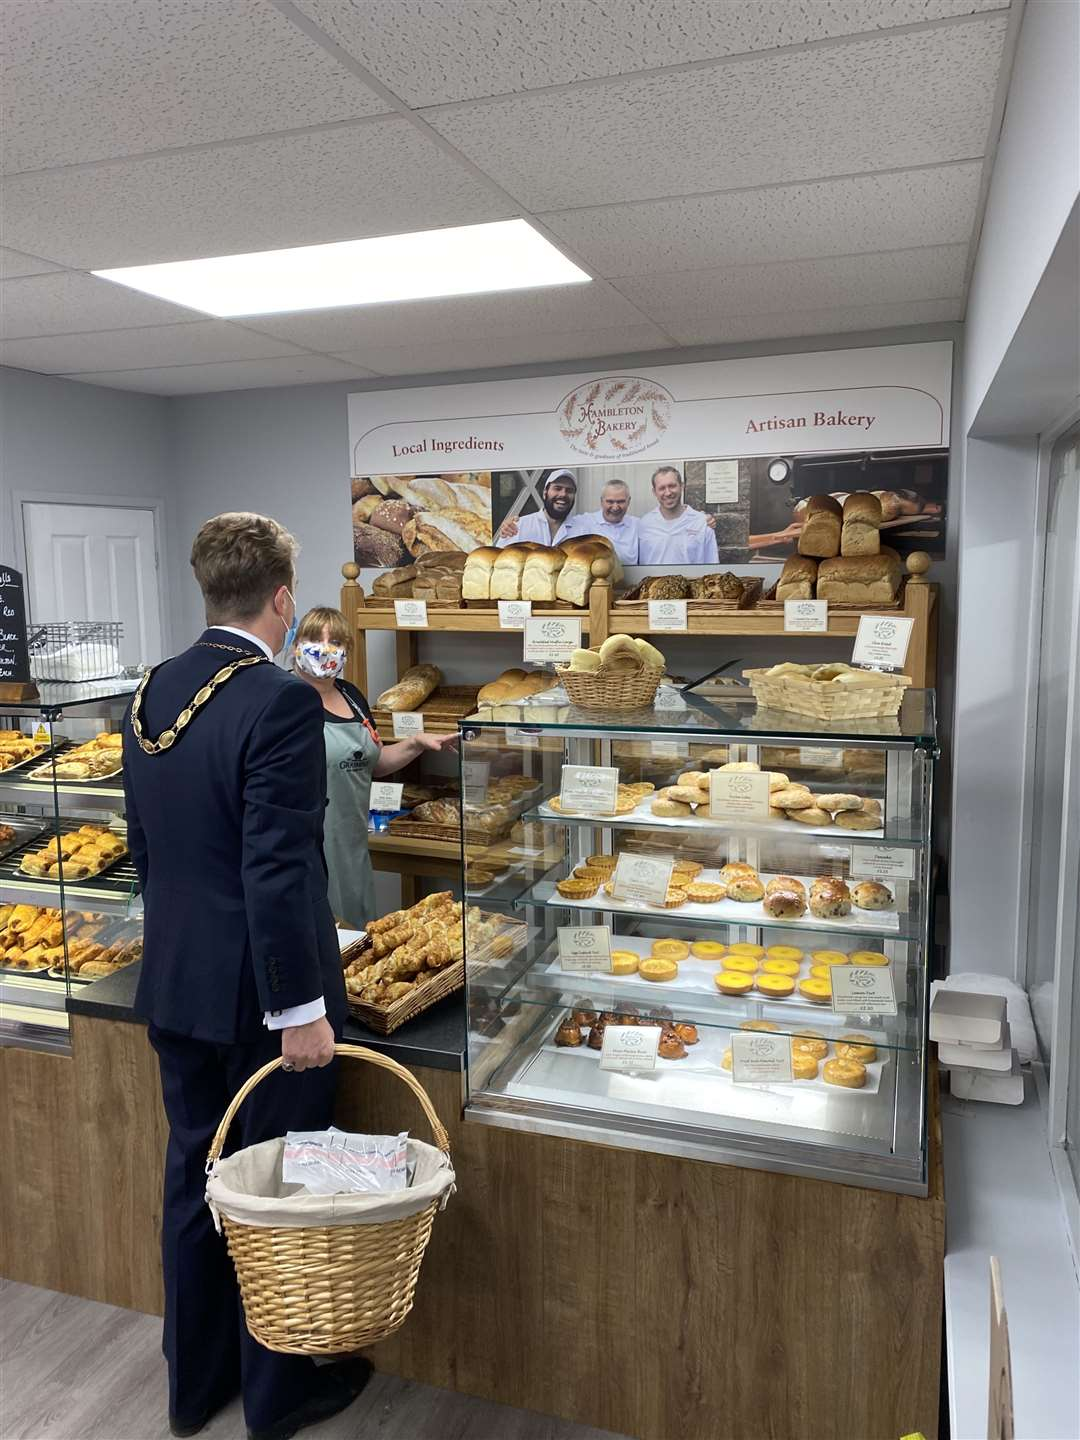 Market Deeping Mayor Josh Yarham shopping in the deli and being served by deli manager Fiona Andrews. Photo: Will Bowell/Grasmere Farm.